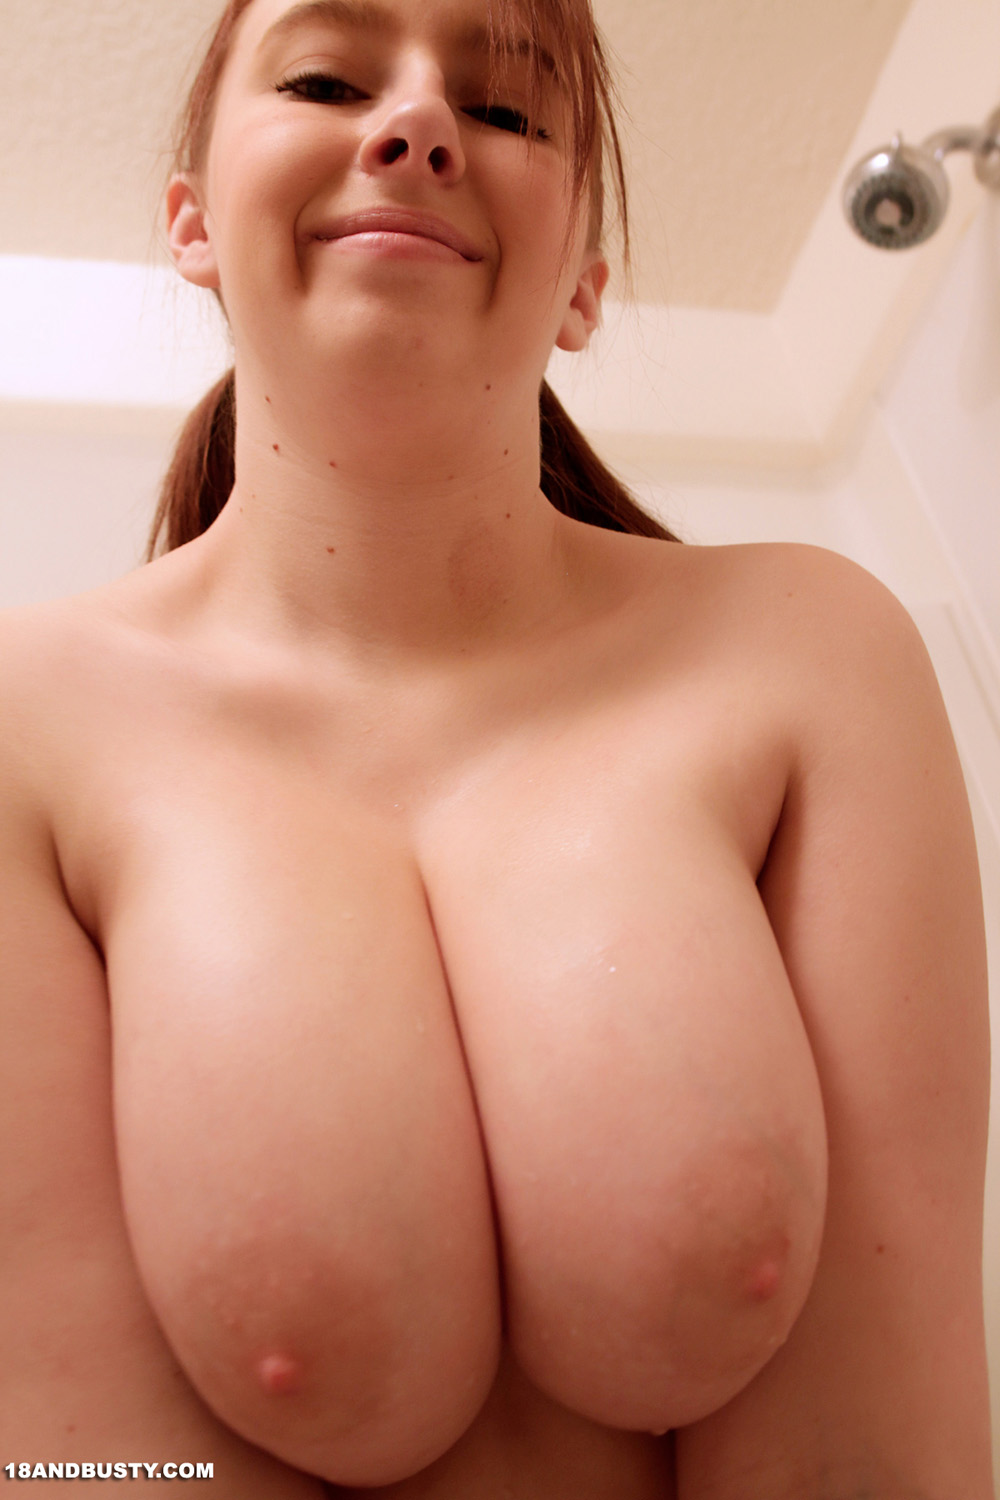 breast milk nude close up